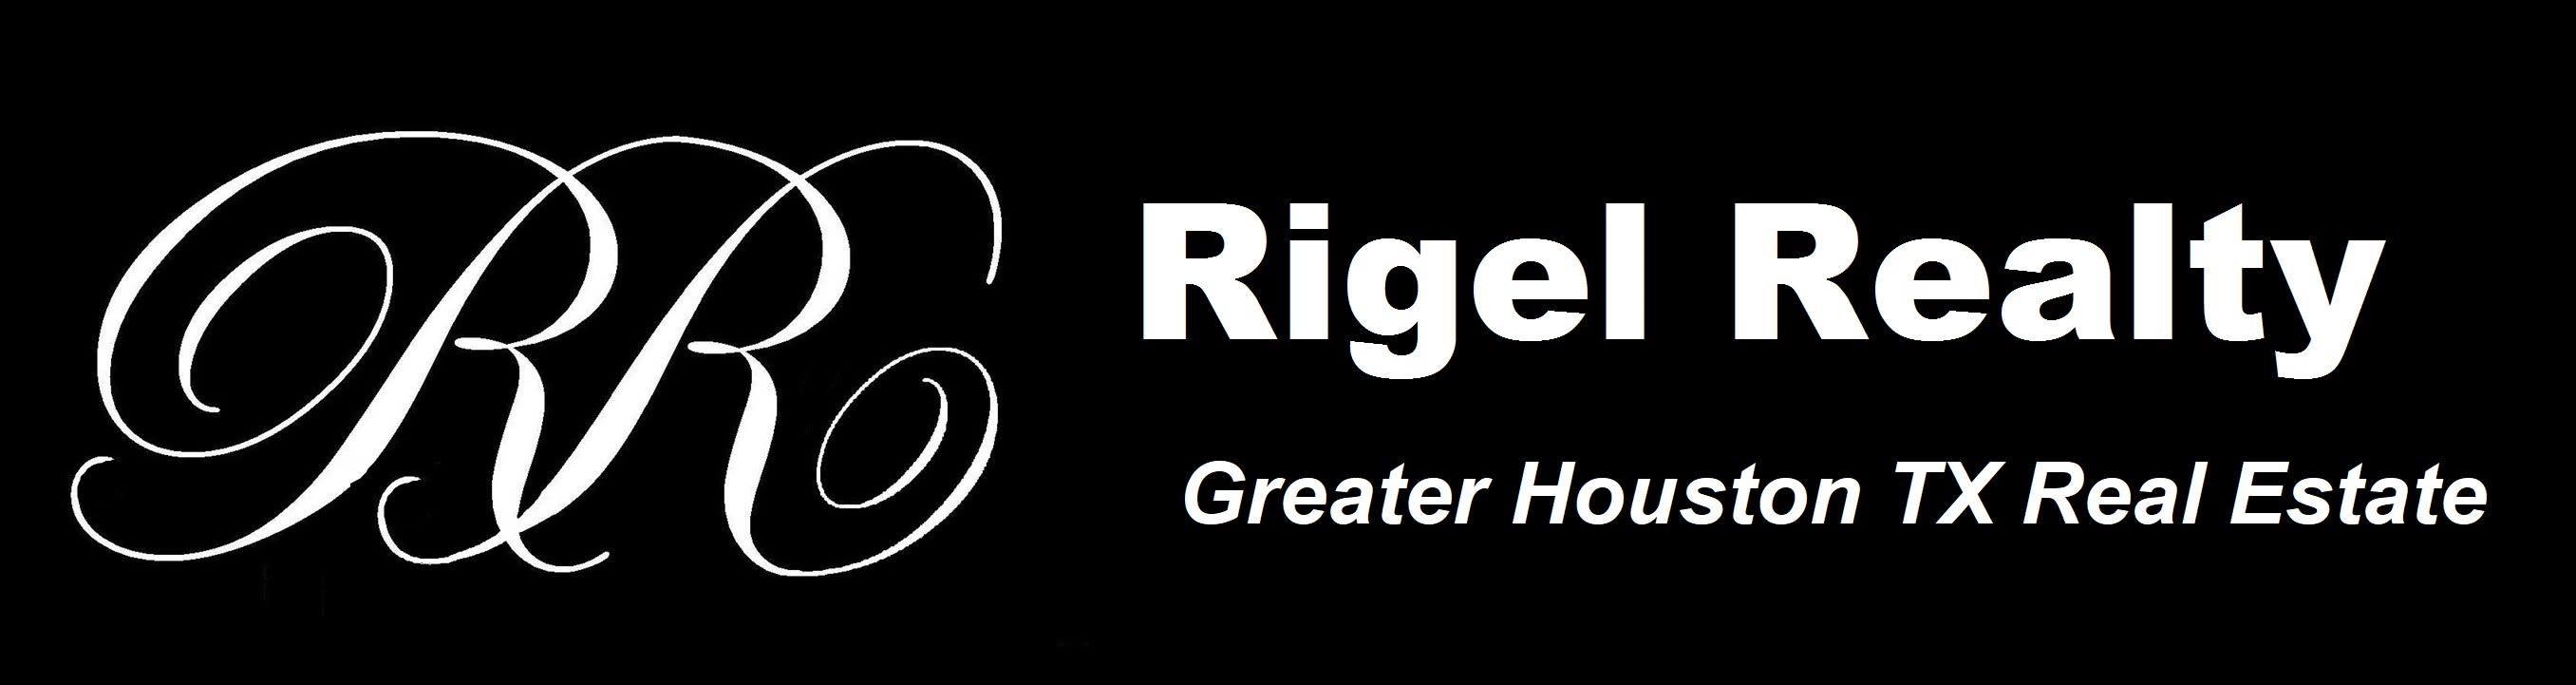 Rigel Realty - Houston